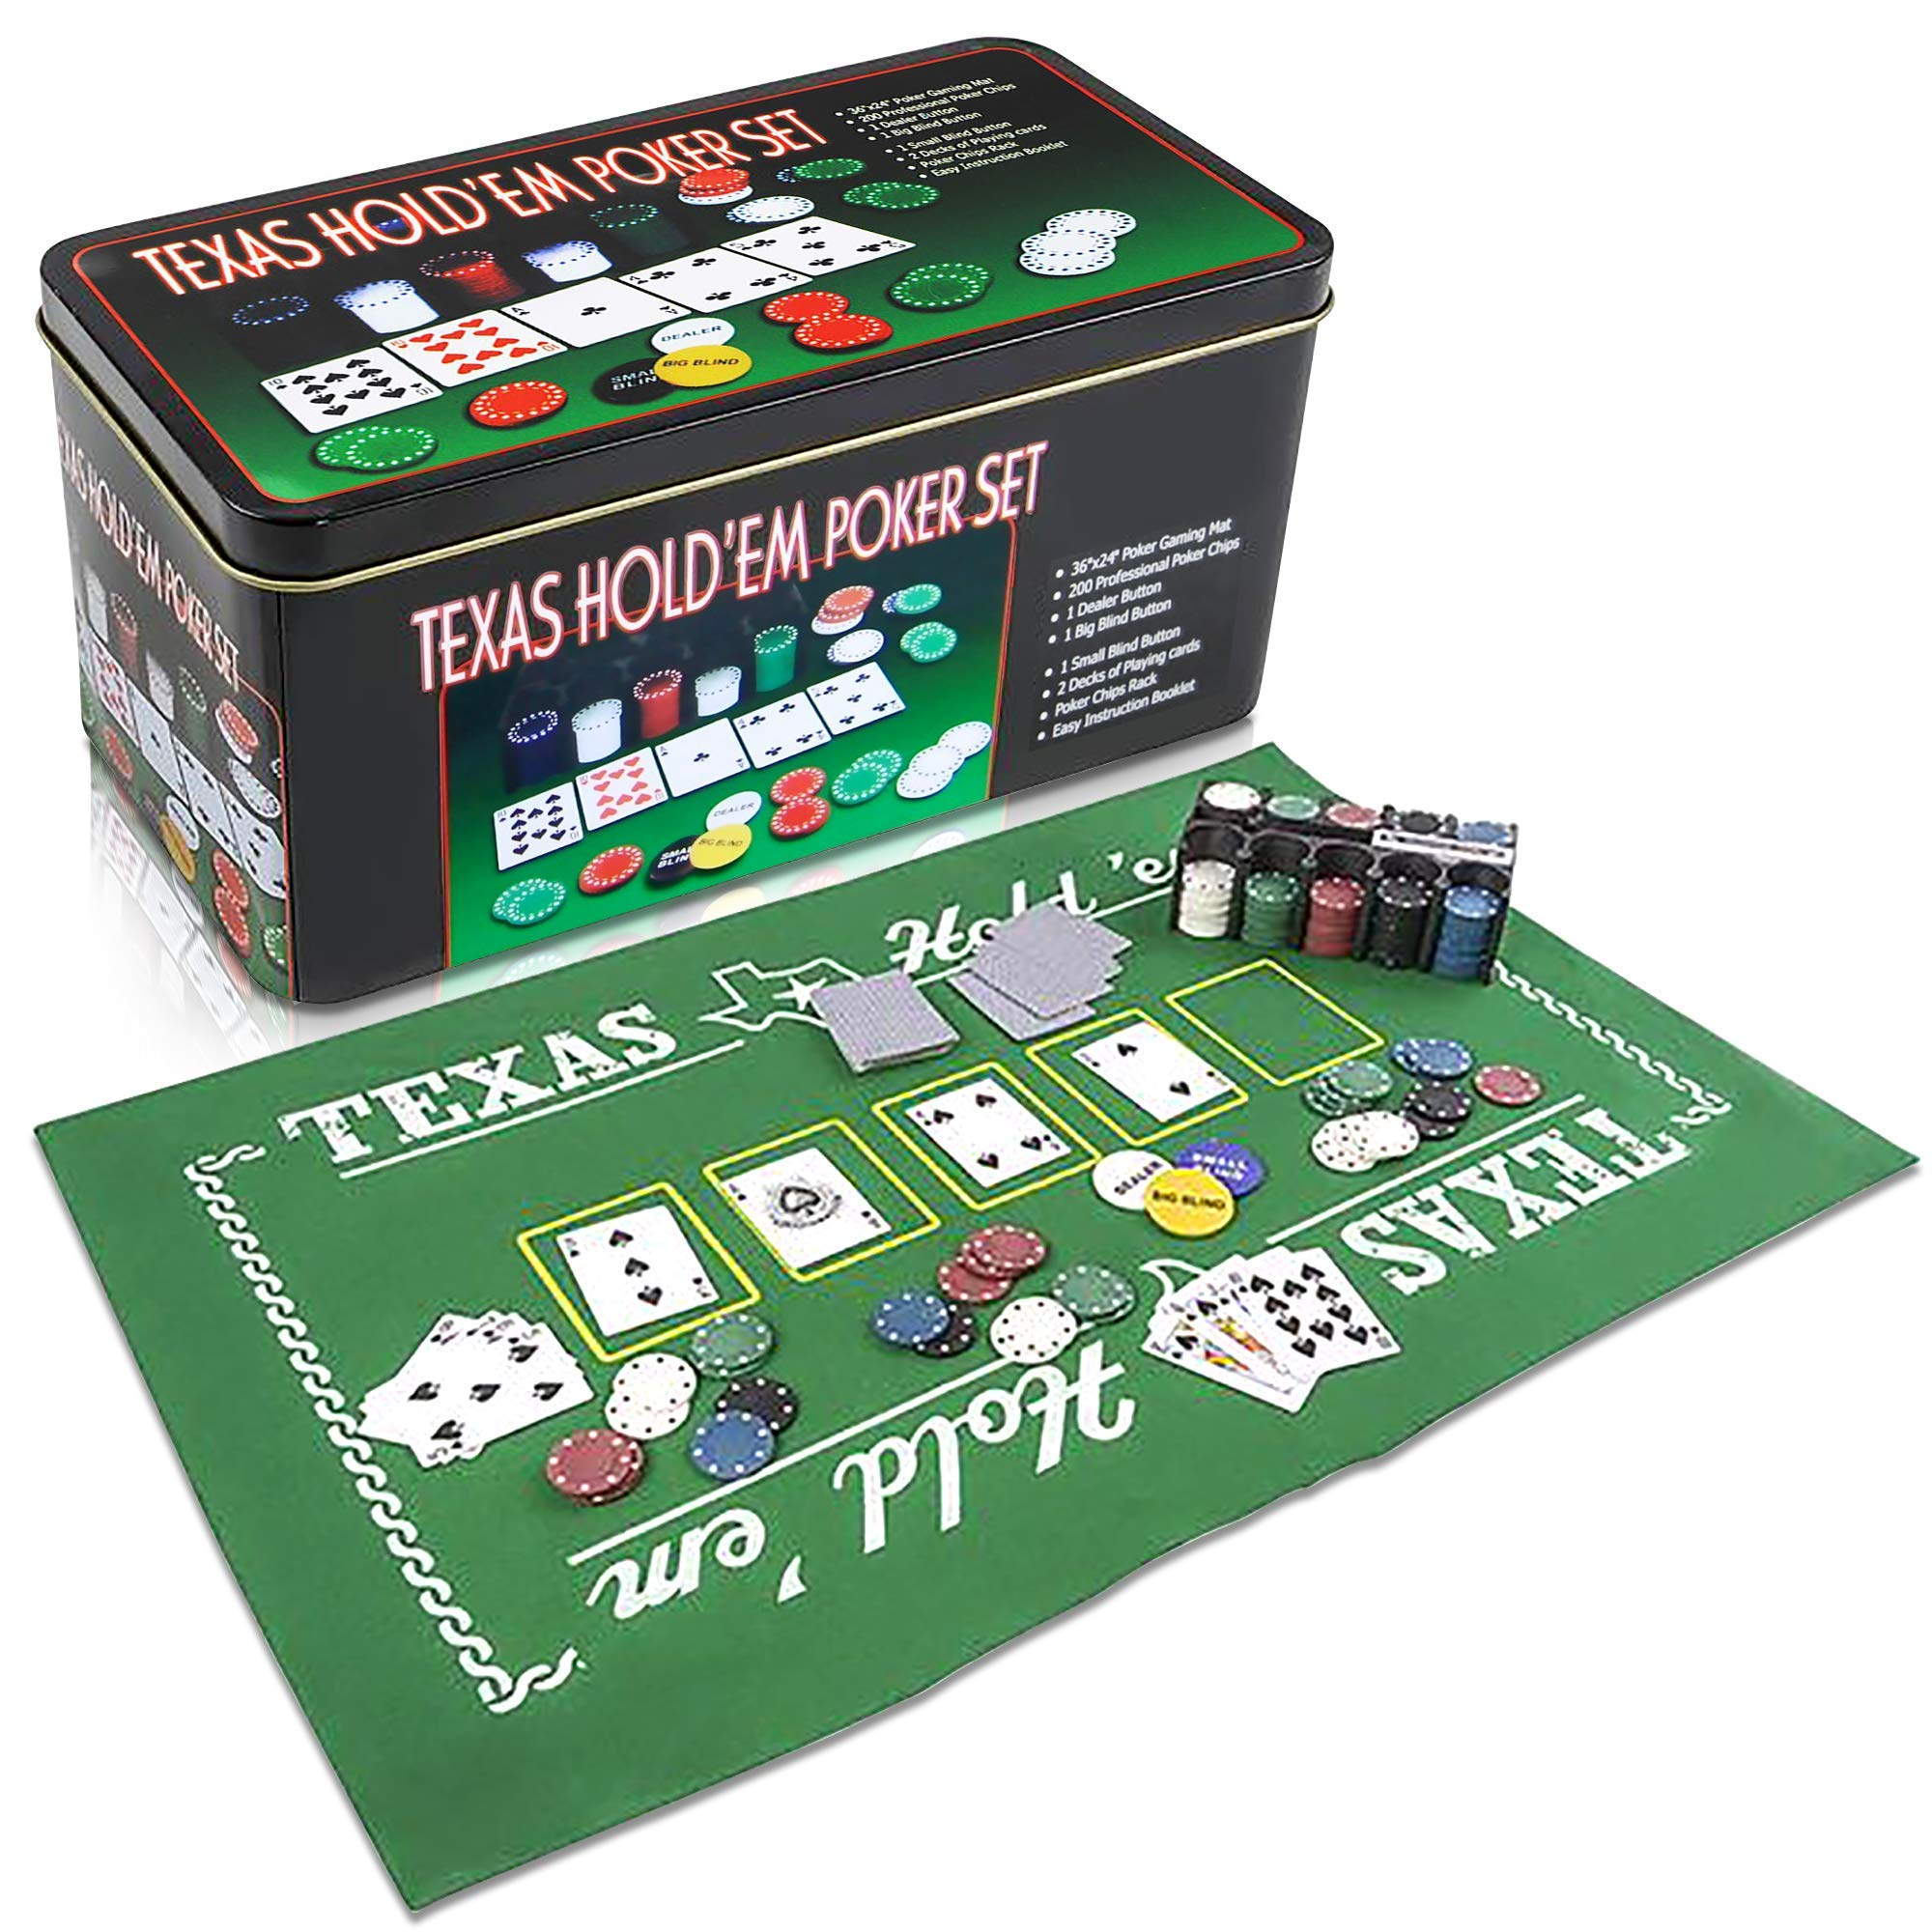 Gamie Texas Holdem Poker Game Set - Includes Hold'em Mat, 2 Card Decks, Chips, Chip Holder and Tin Storage Box - Fun Game Night Supplies - Cool Casino Gift for Kids and Adults by Gamie